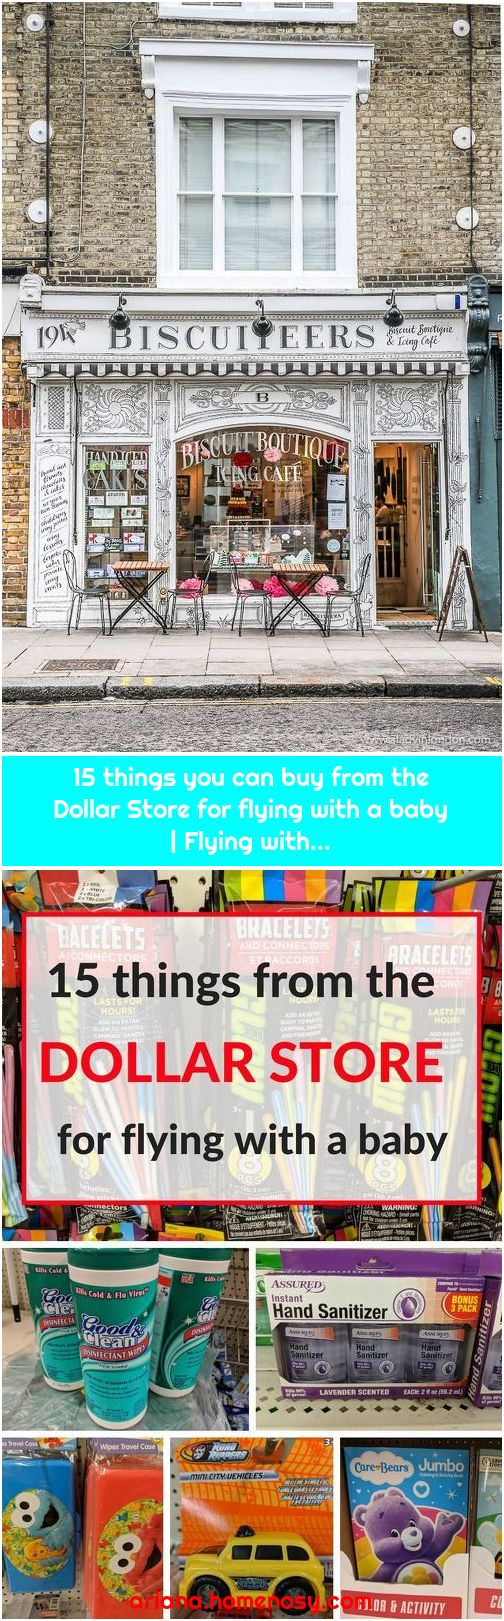 15 things you can buy from the Dollar Store for flying with a baby | Flying with...